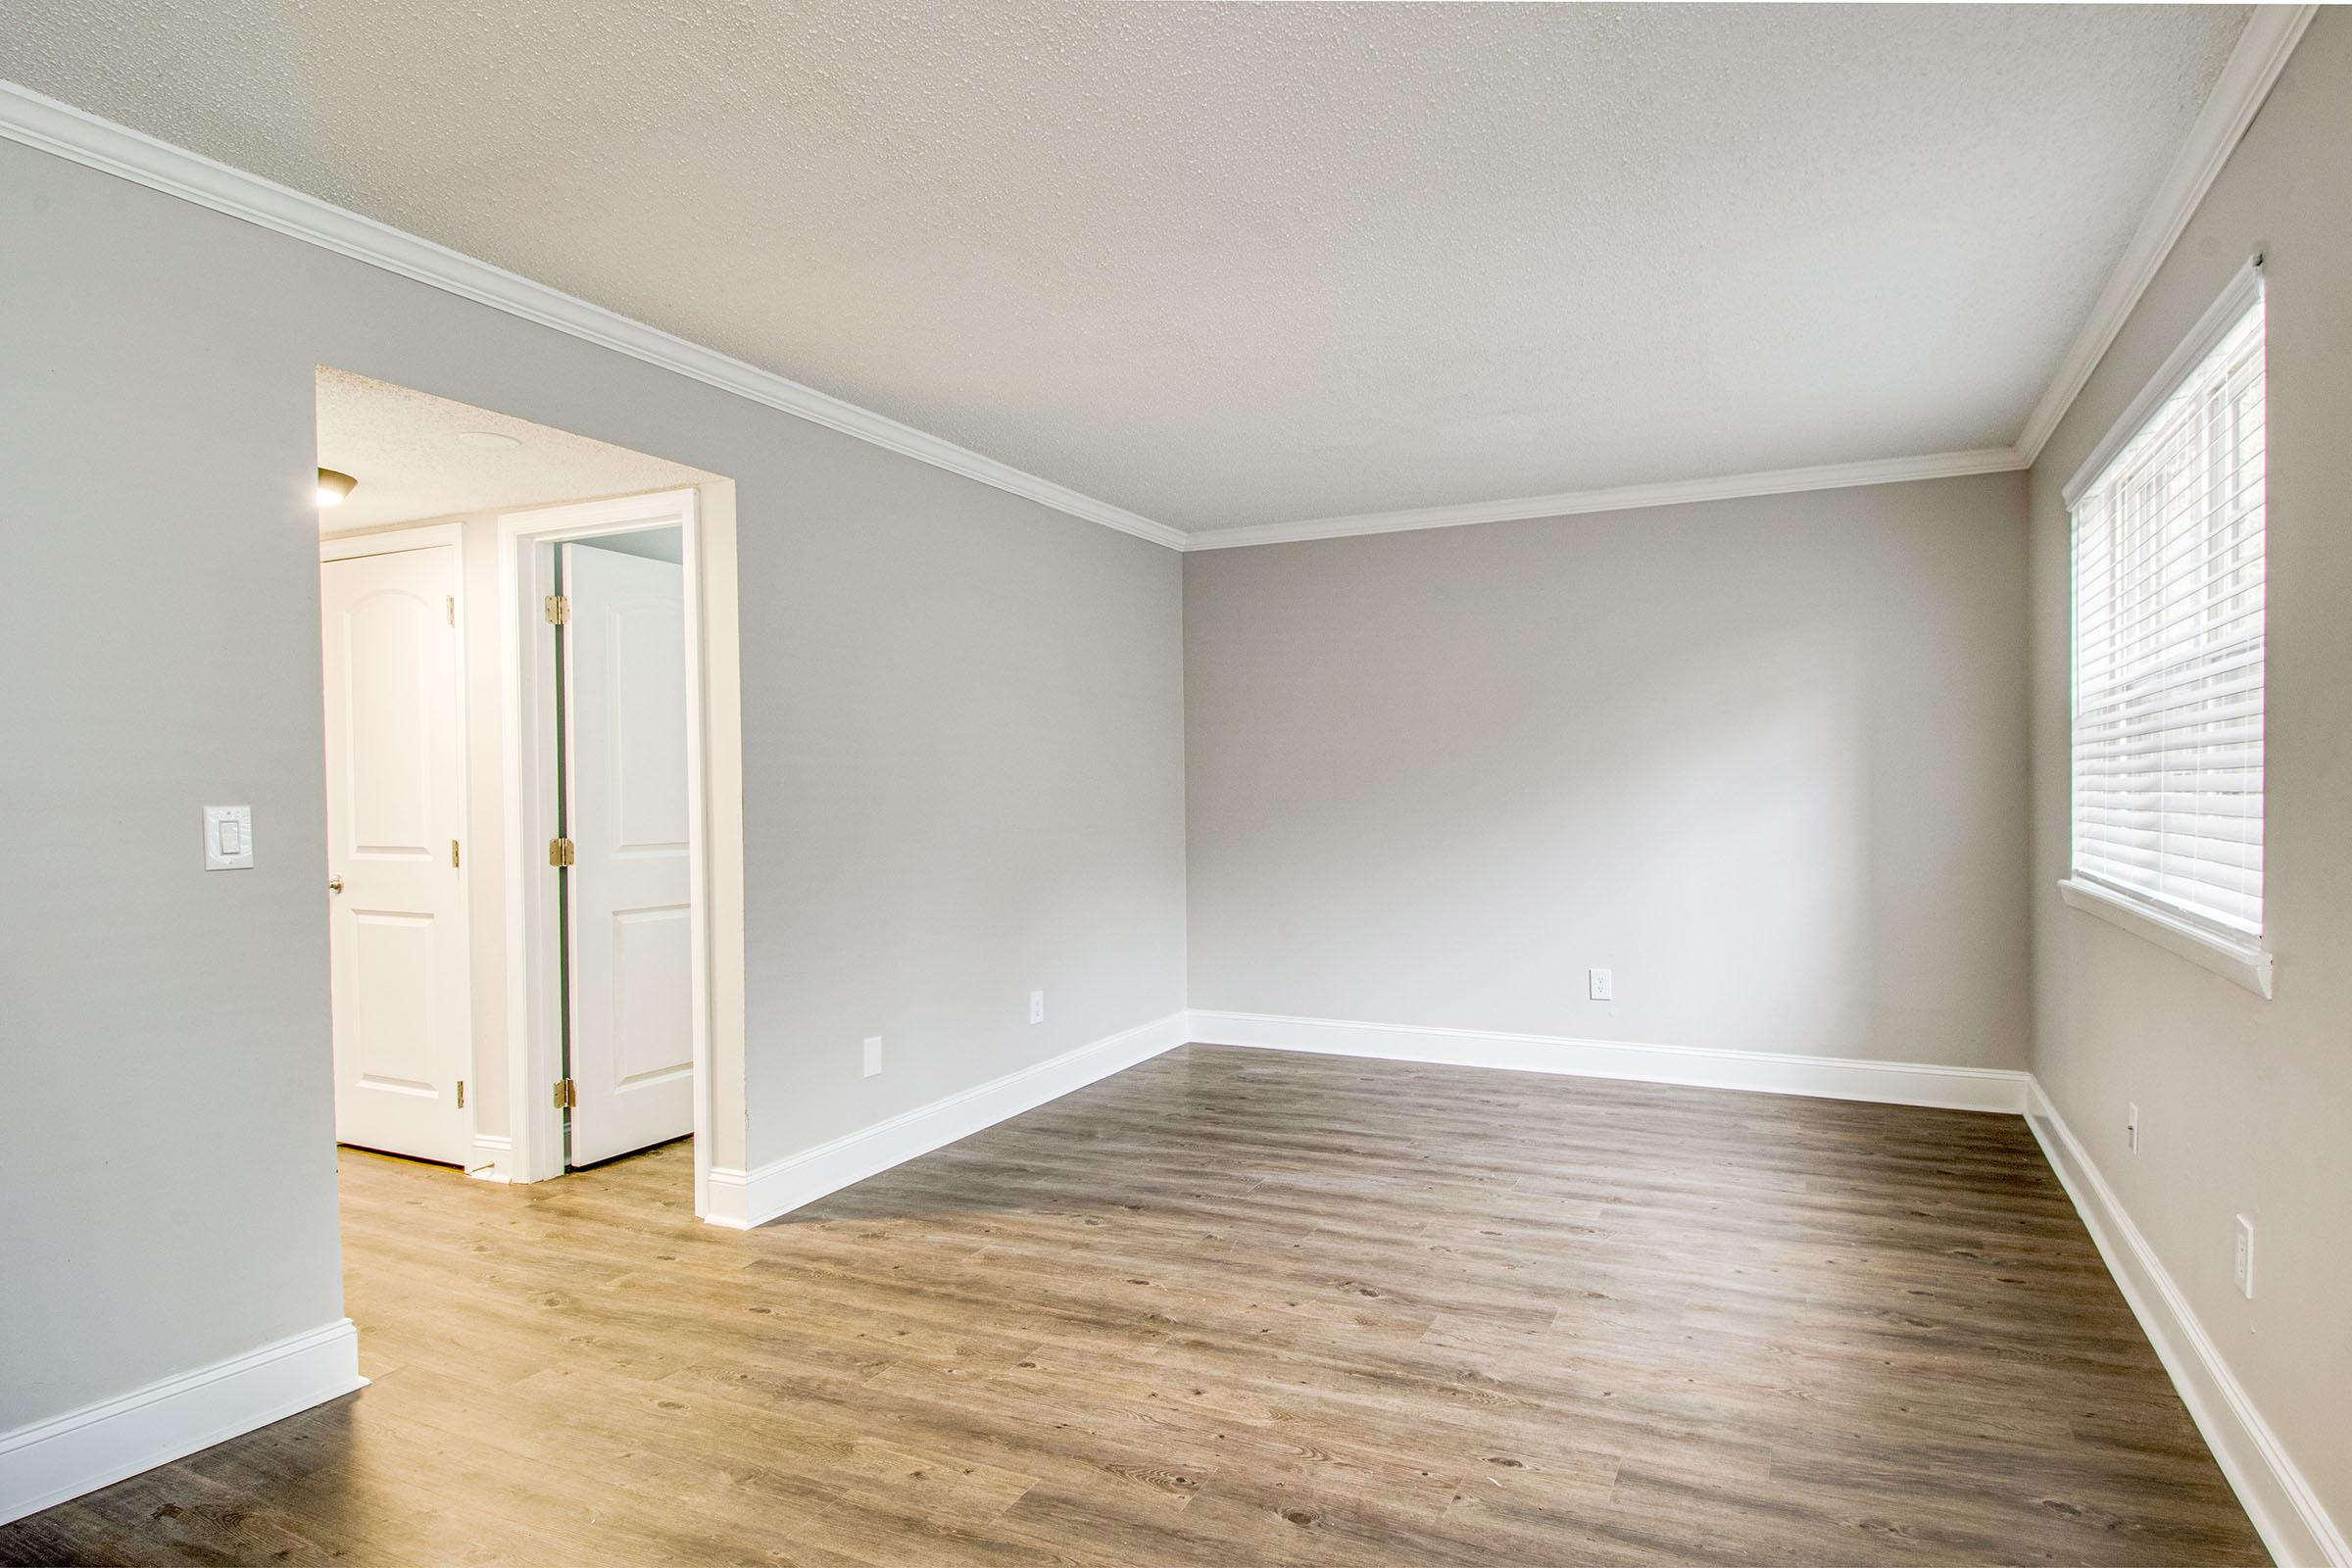 Two bedroom townhome living area